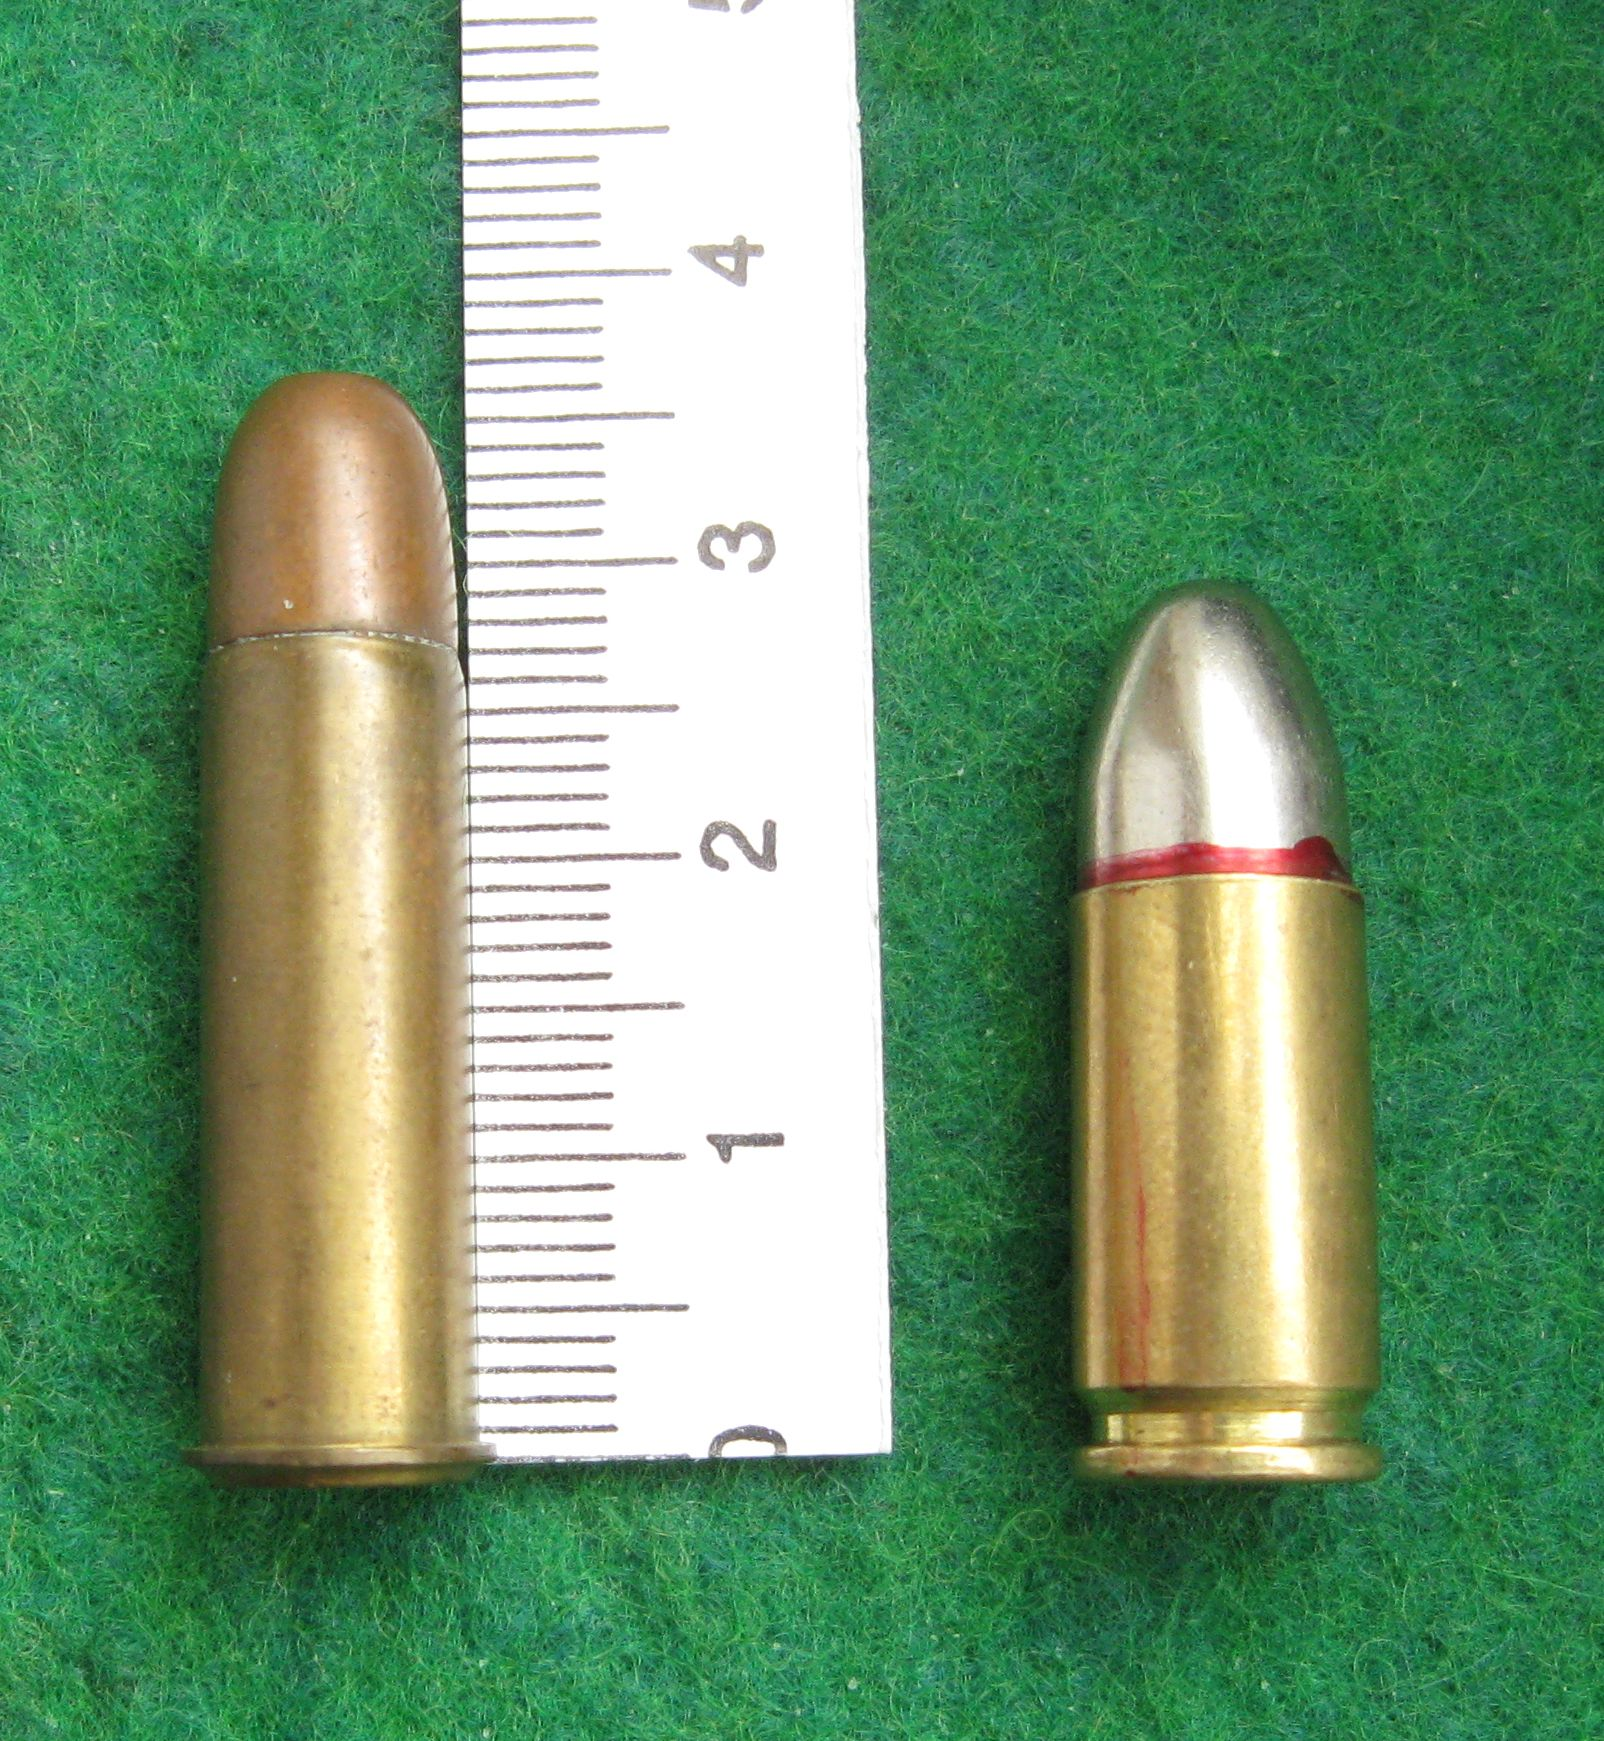 8Mm Lebel Ammo for Sale http://www.pic2fly.com/8Mm+Lebel+Rifle+for+Sale.html